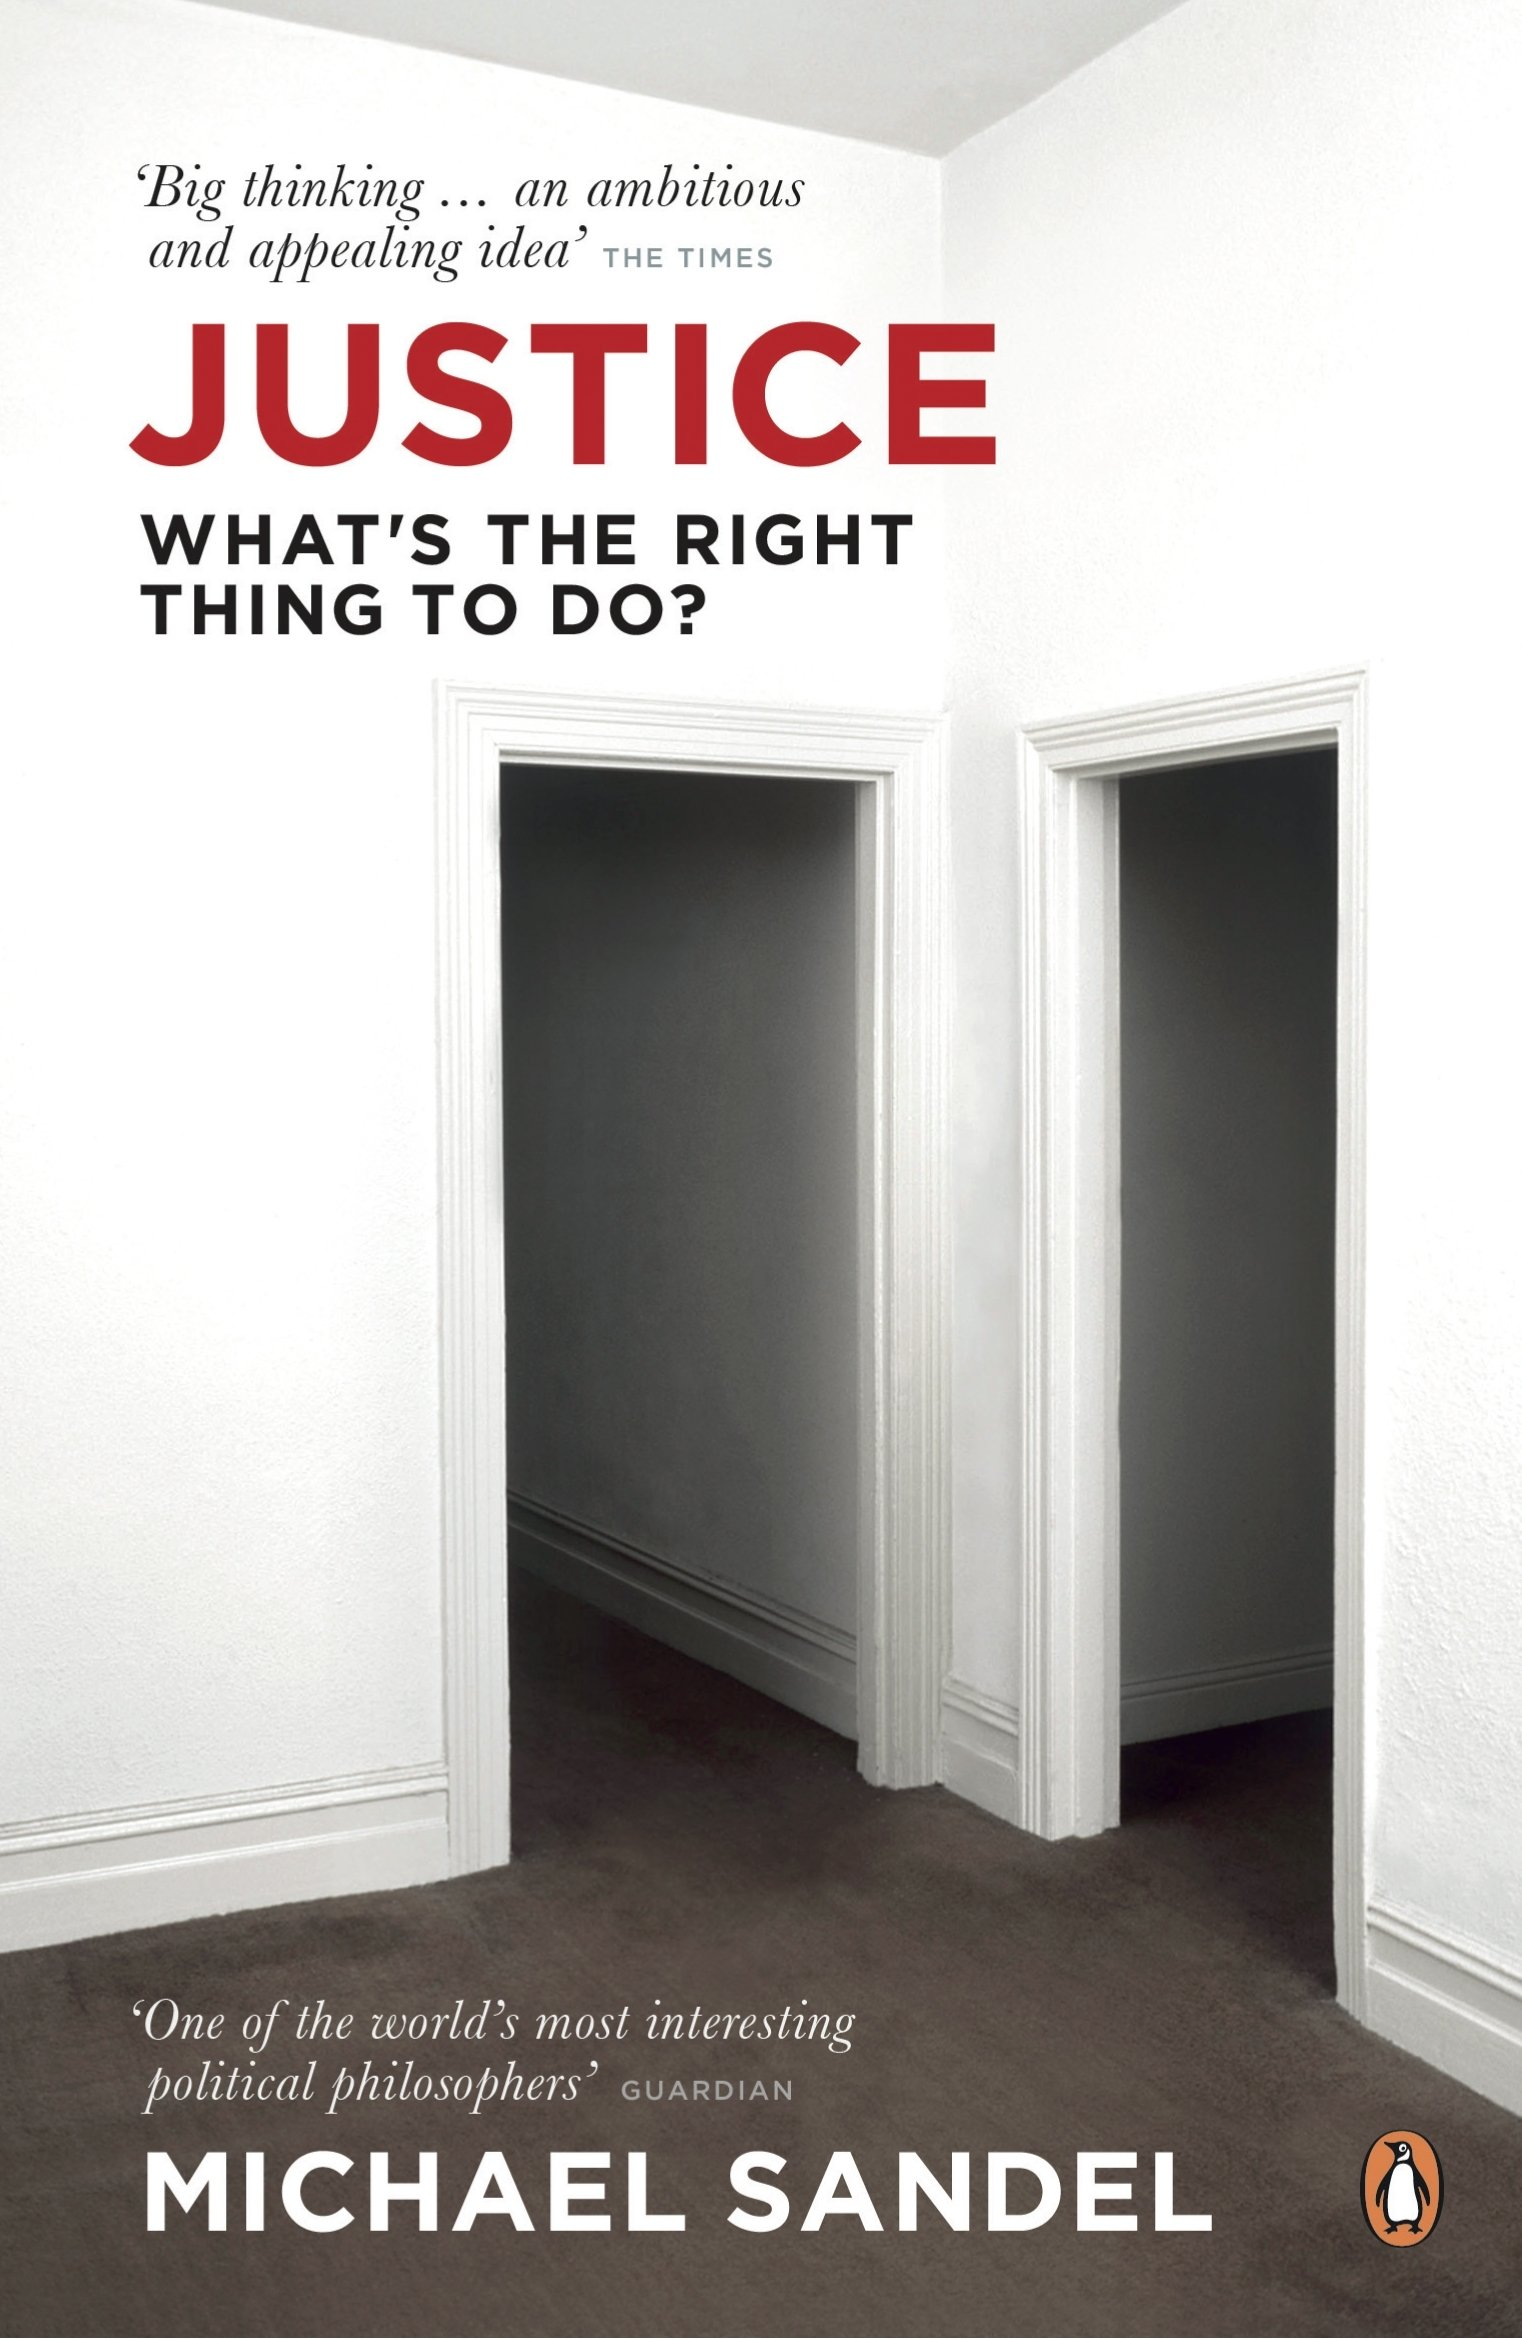 Justice: What's the Right Thing to Do?: Amazon.co.uk: Michael Sandel:  9780141041339: Books